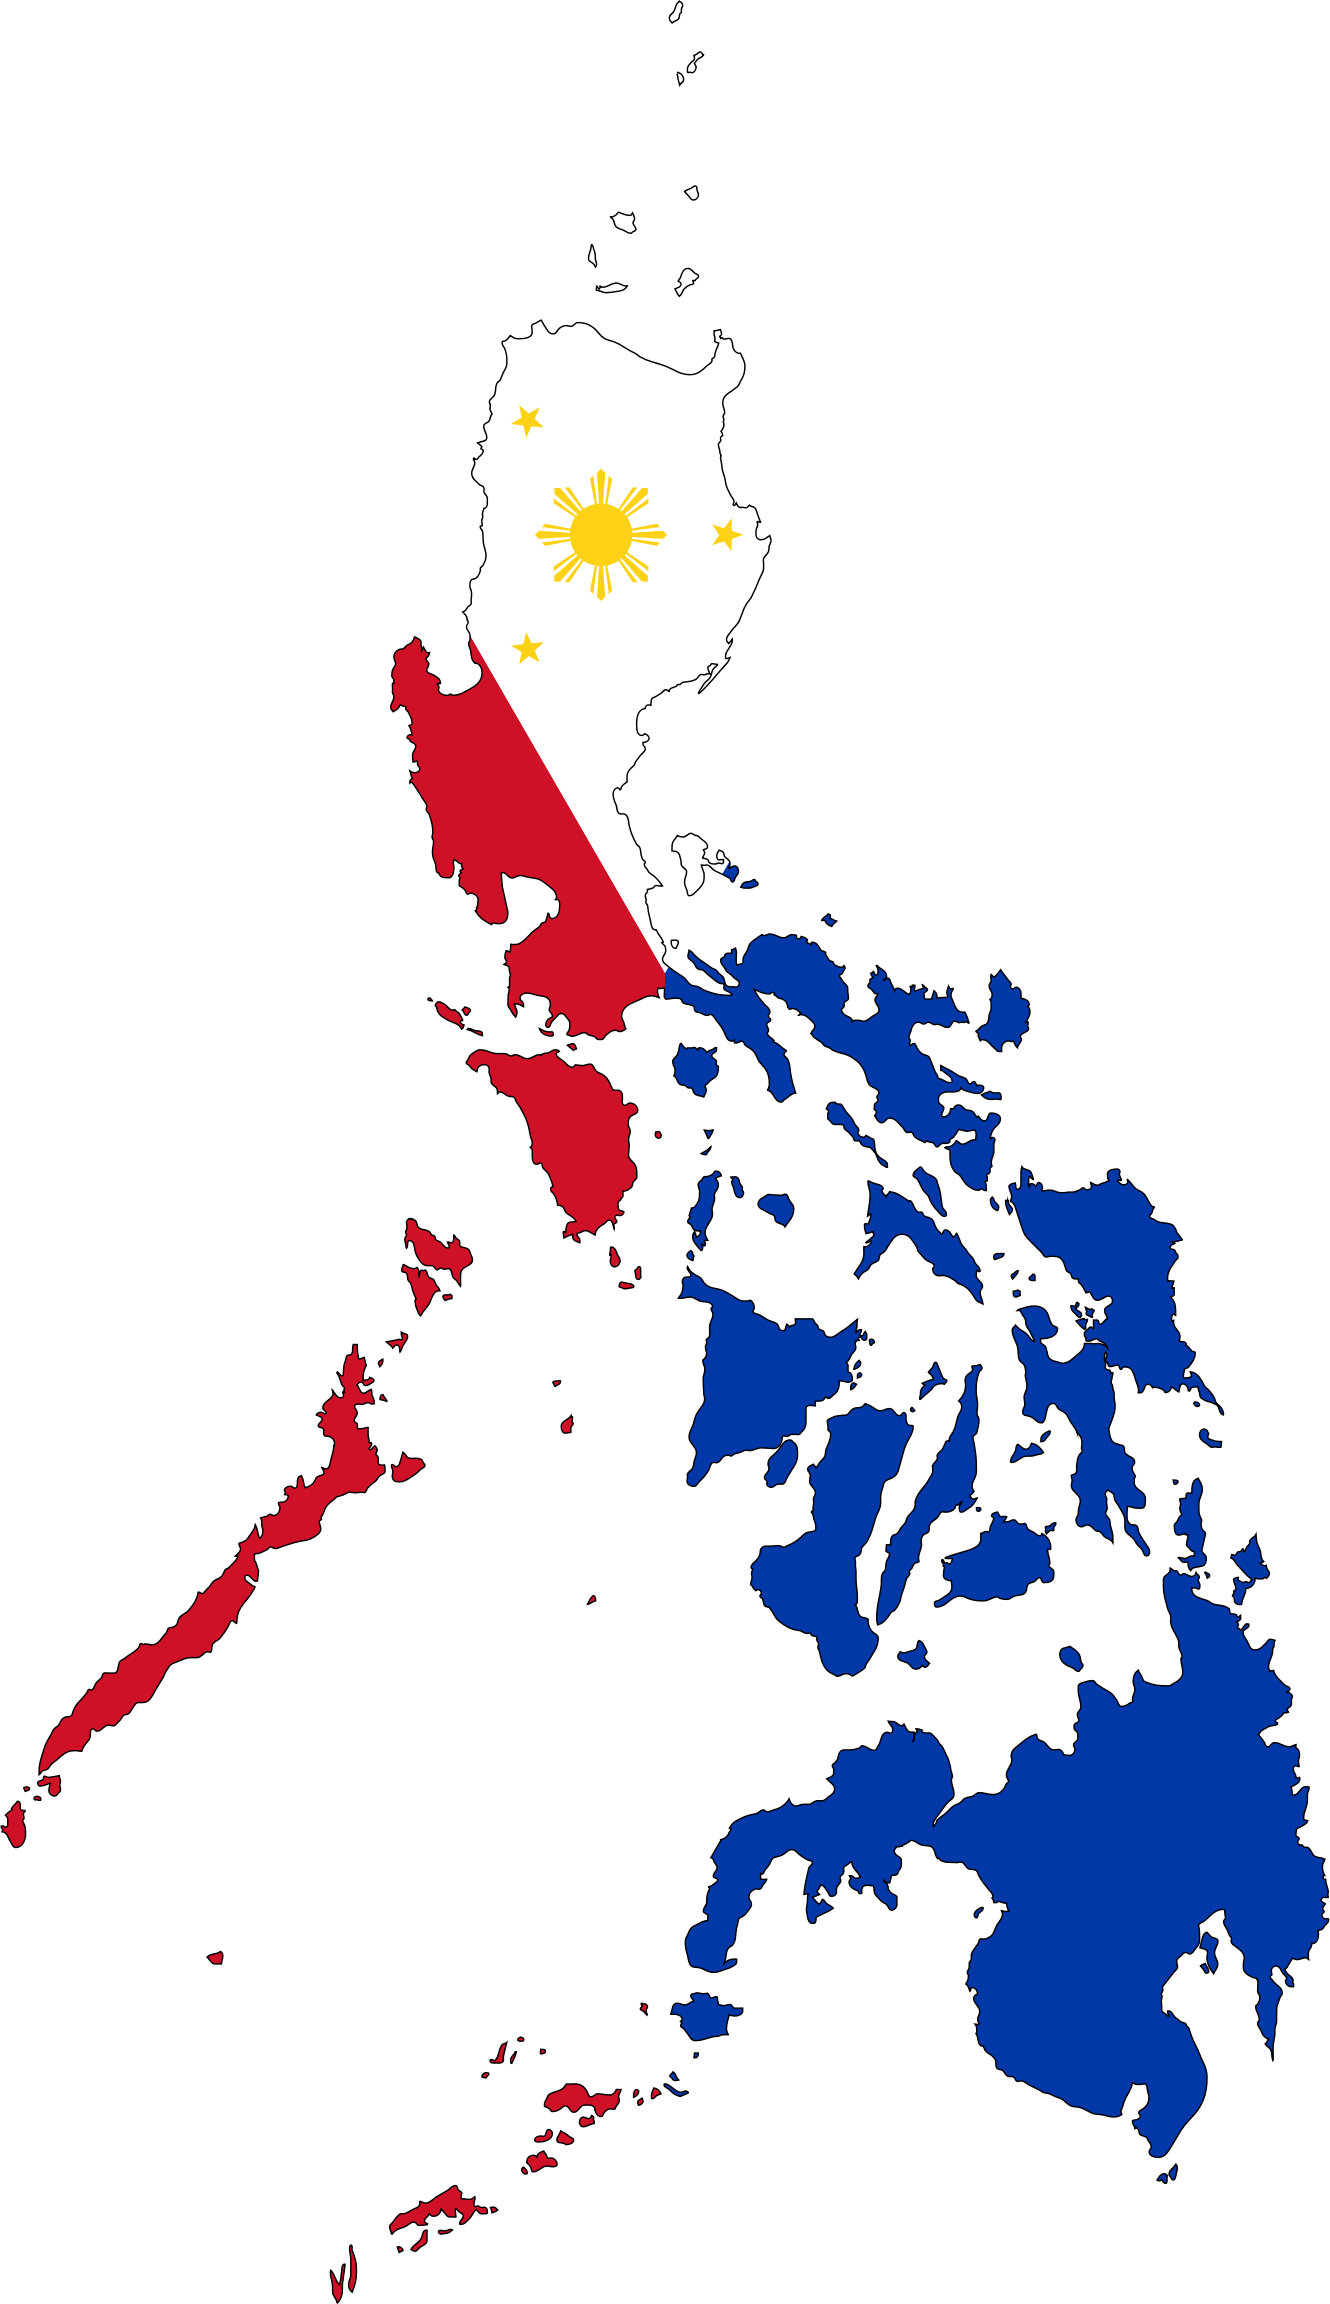 Philippines Map Flag With Stroke by GDJ